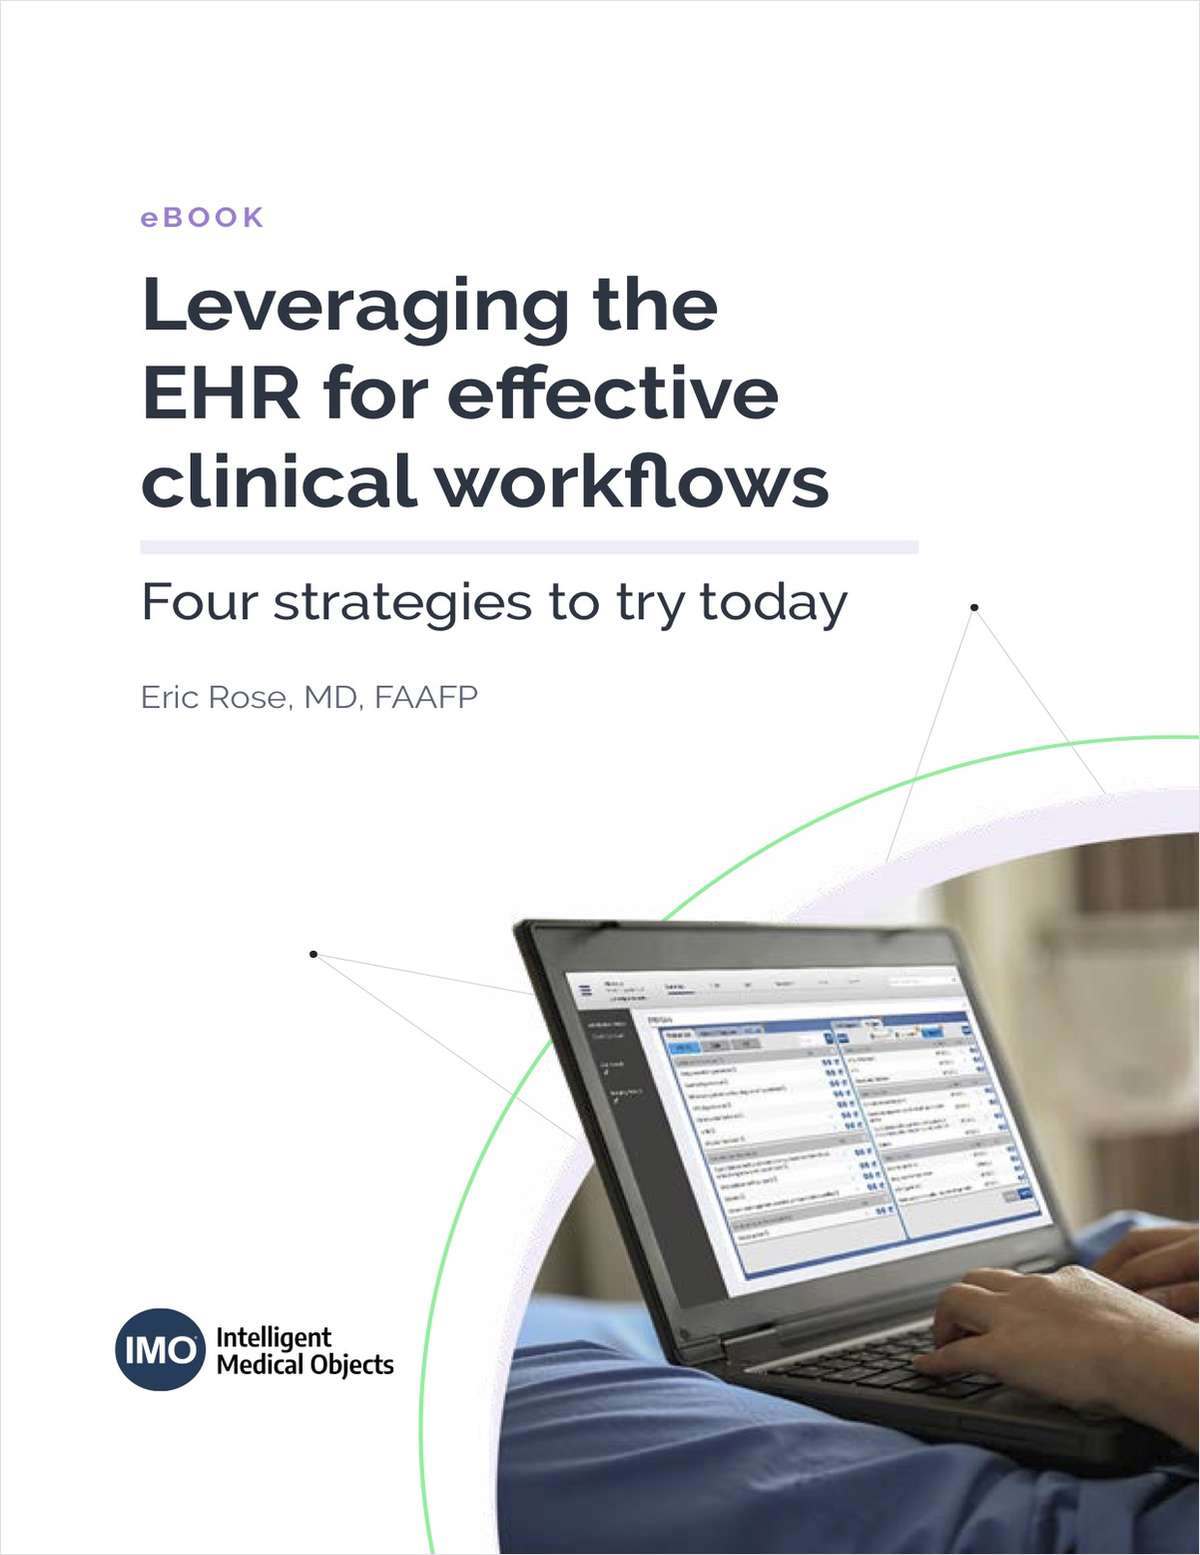 Leveraging the EHR for effective clinical workflows: Four strategies to try today